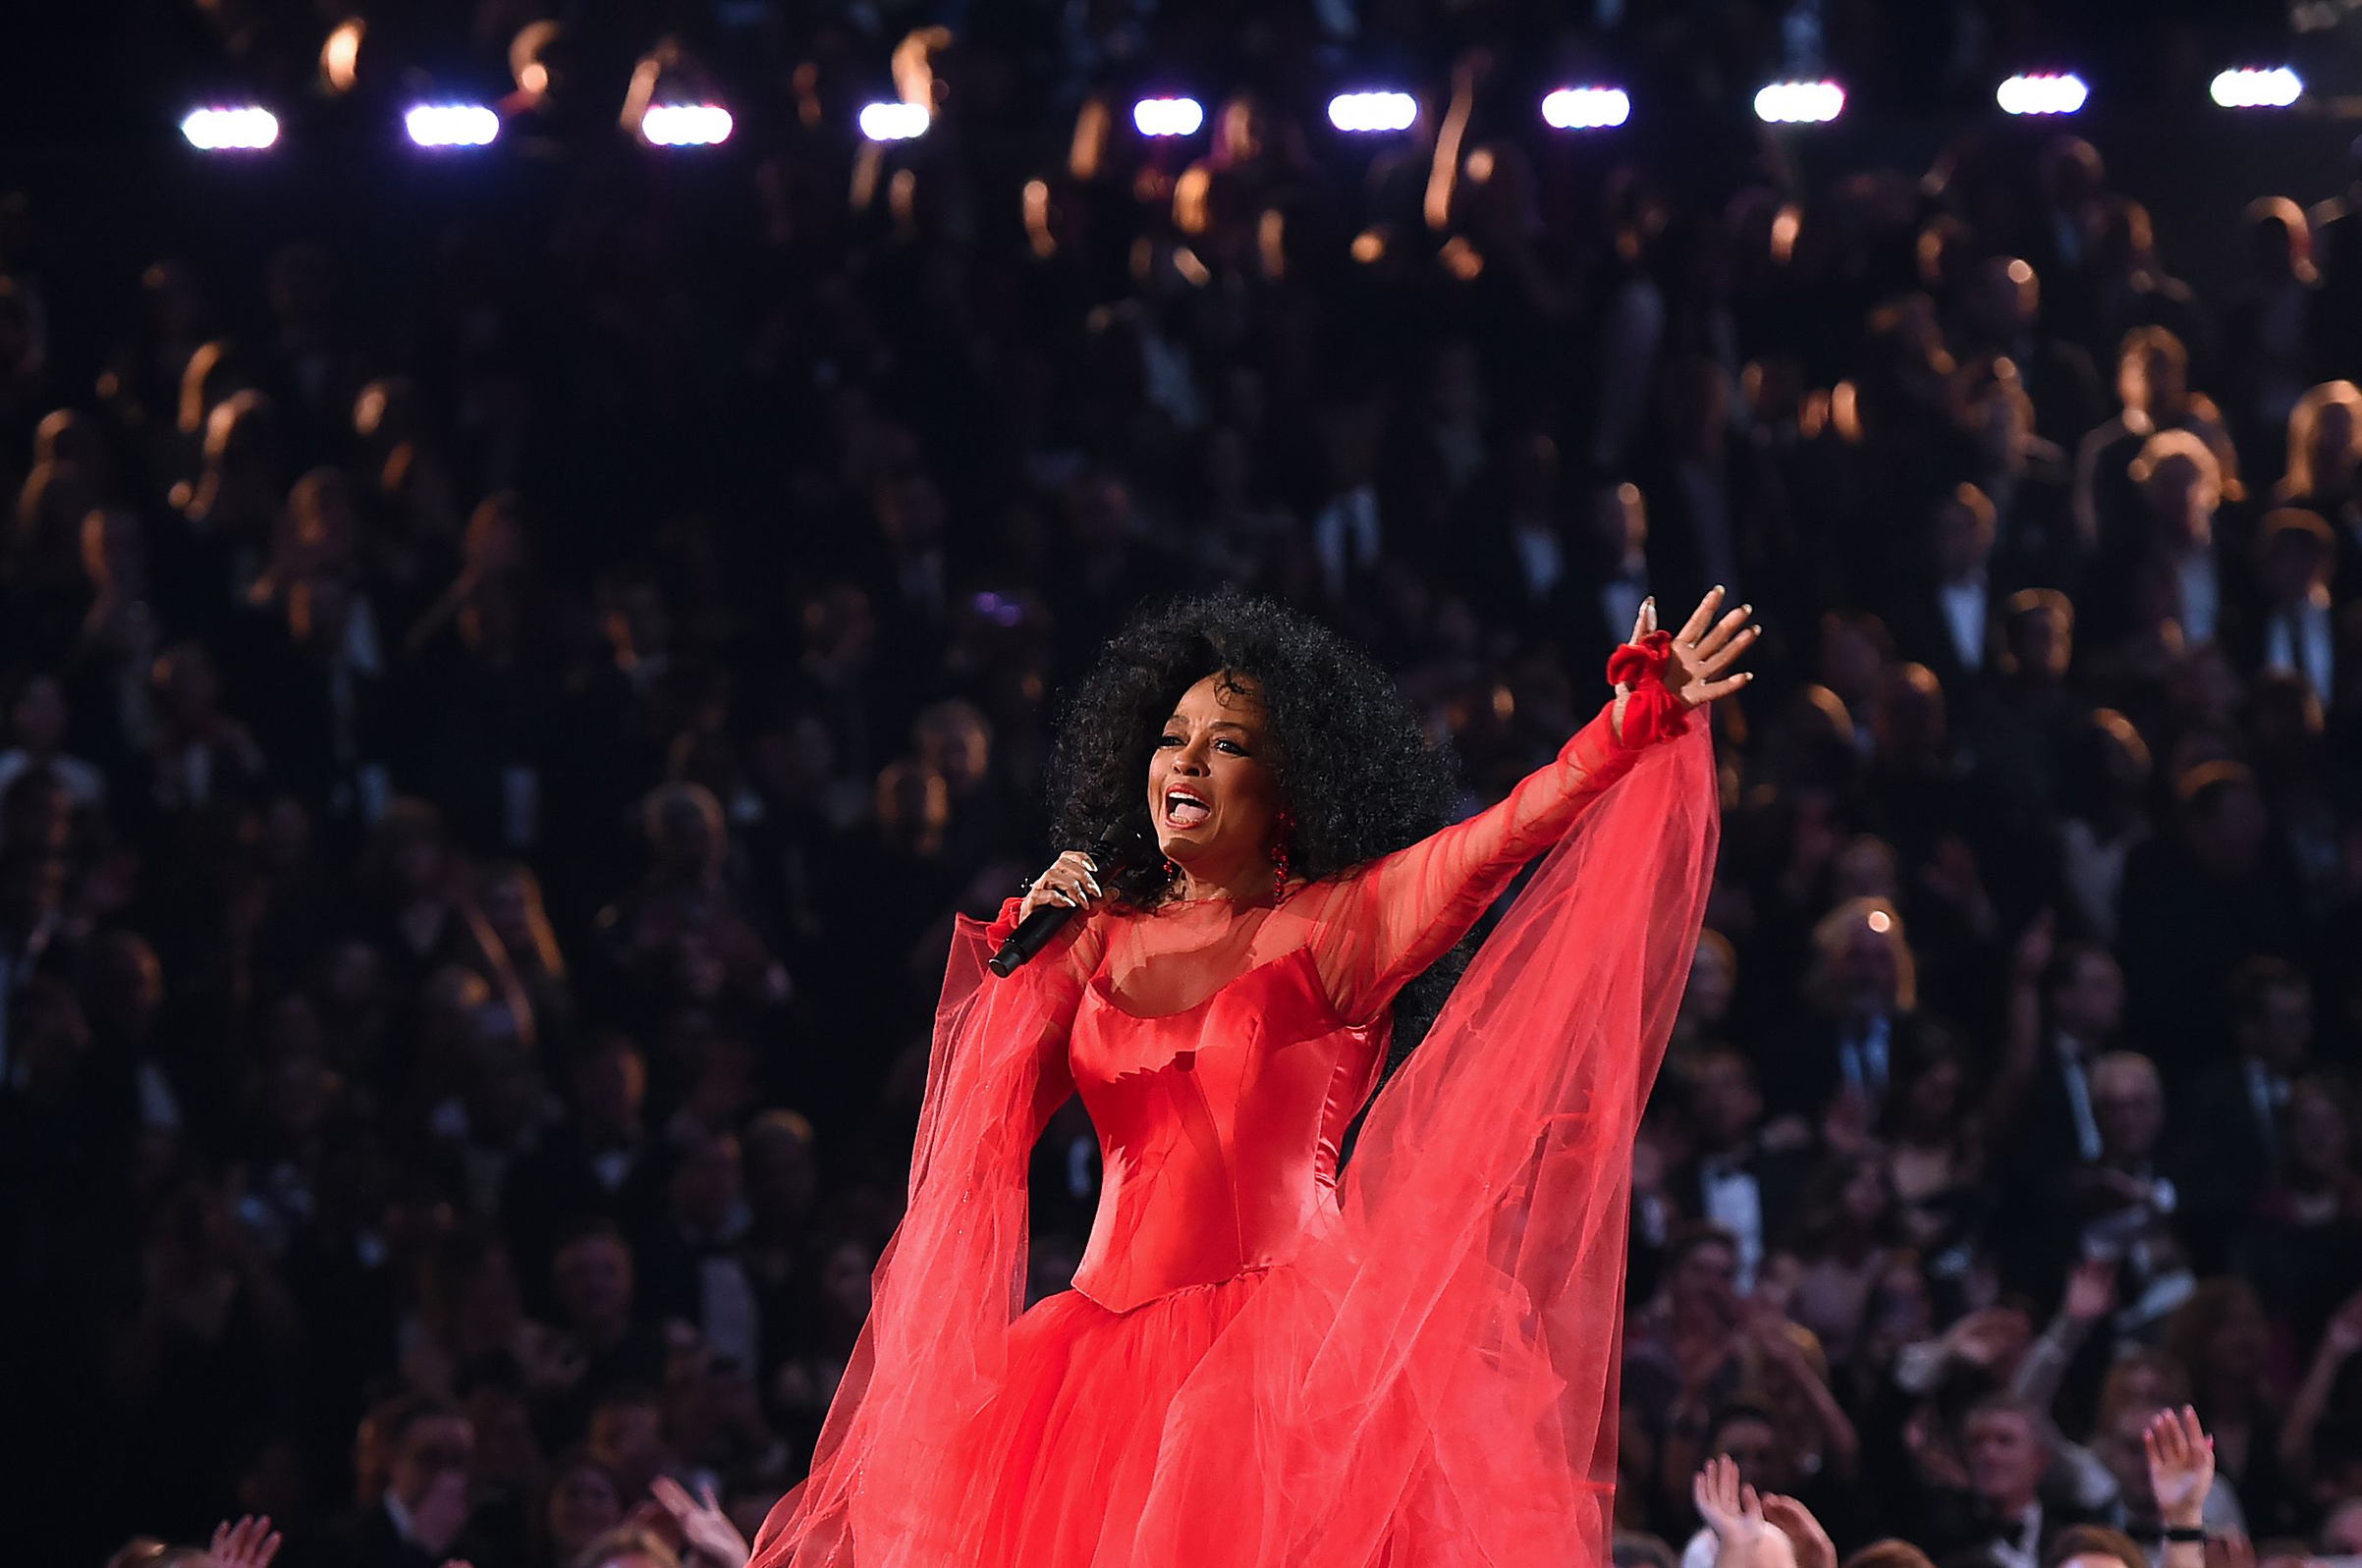 Diana Ross performs onstage during the 61st Annual Grammy Awards on Feb. 10, 2019, in Los Angeles.